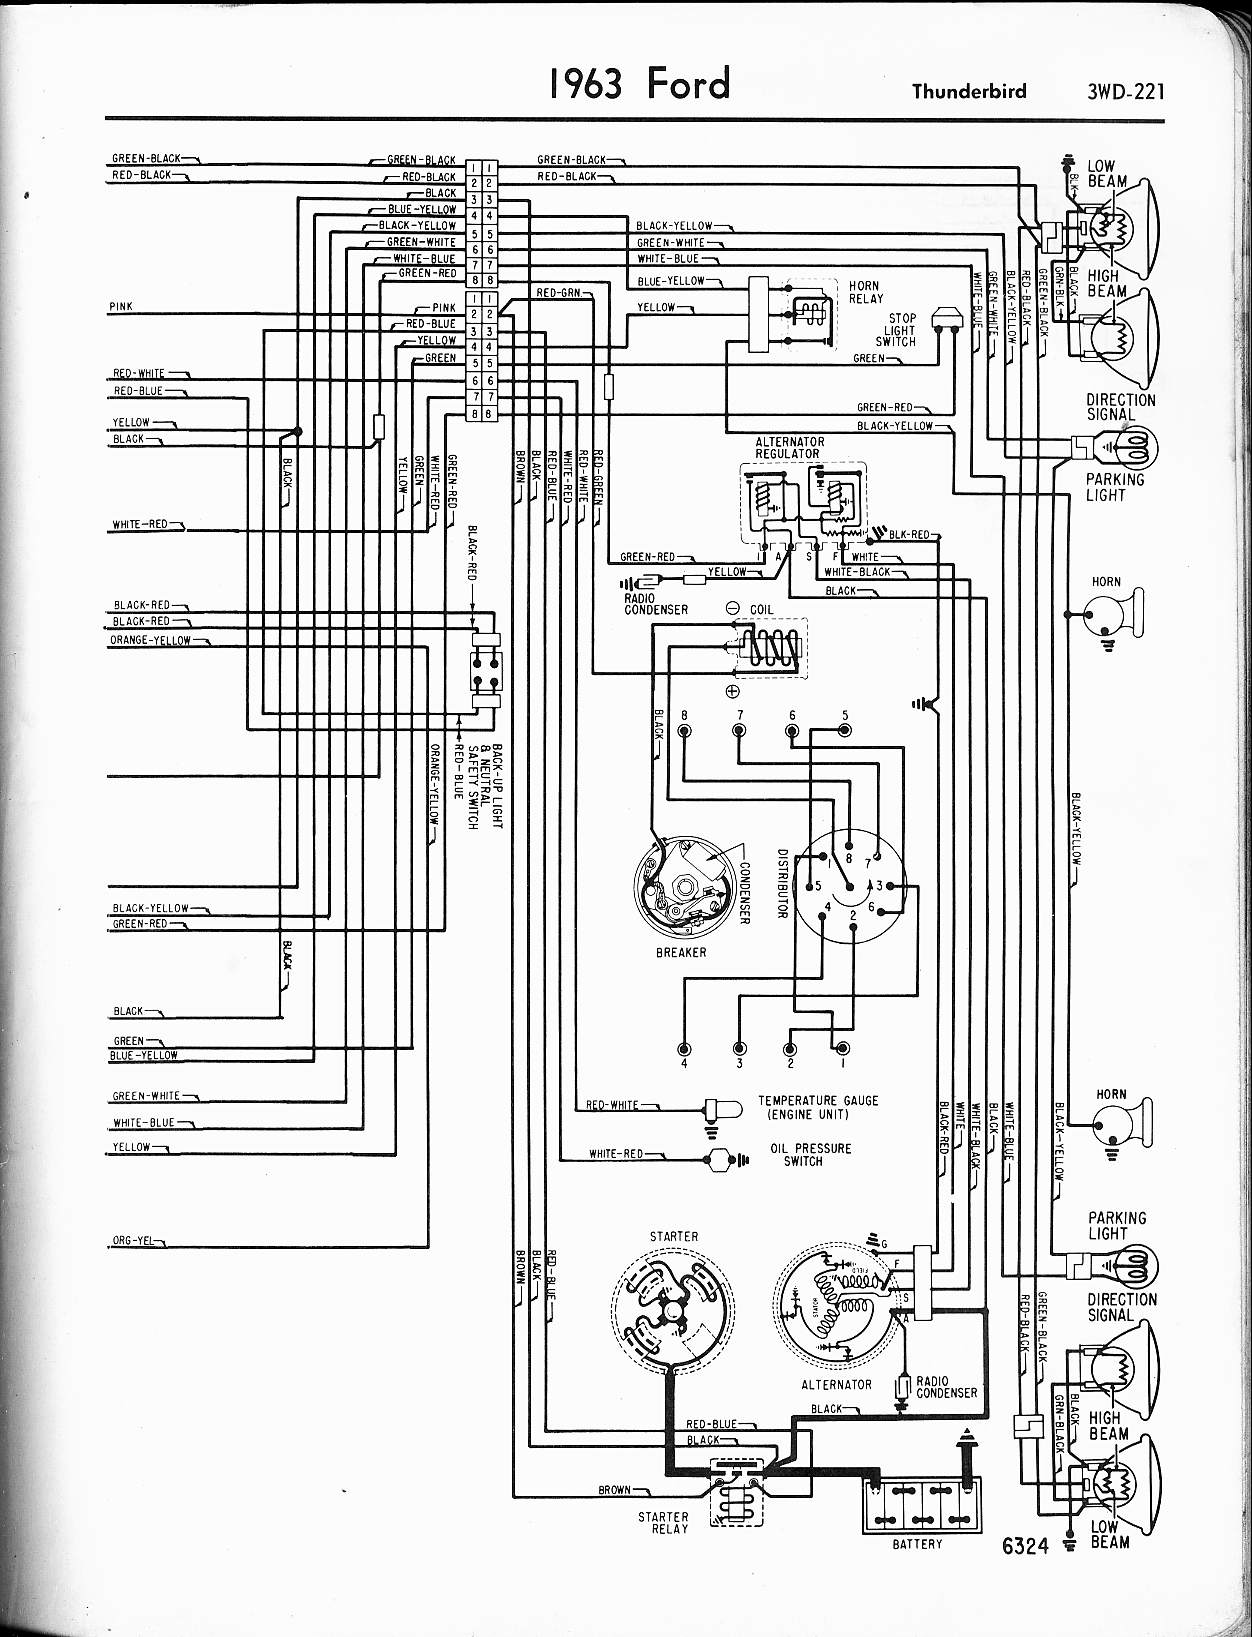 MWire5765 221 1967 thunderbird turn signal diagram wiring schematic on 1967 Cub Cadet 100 at gsmportal.co